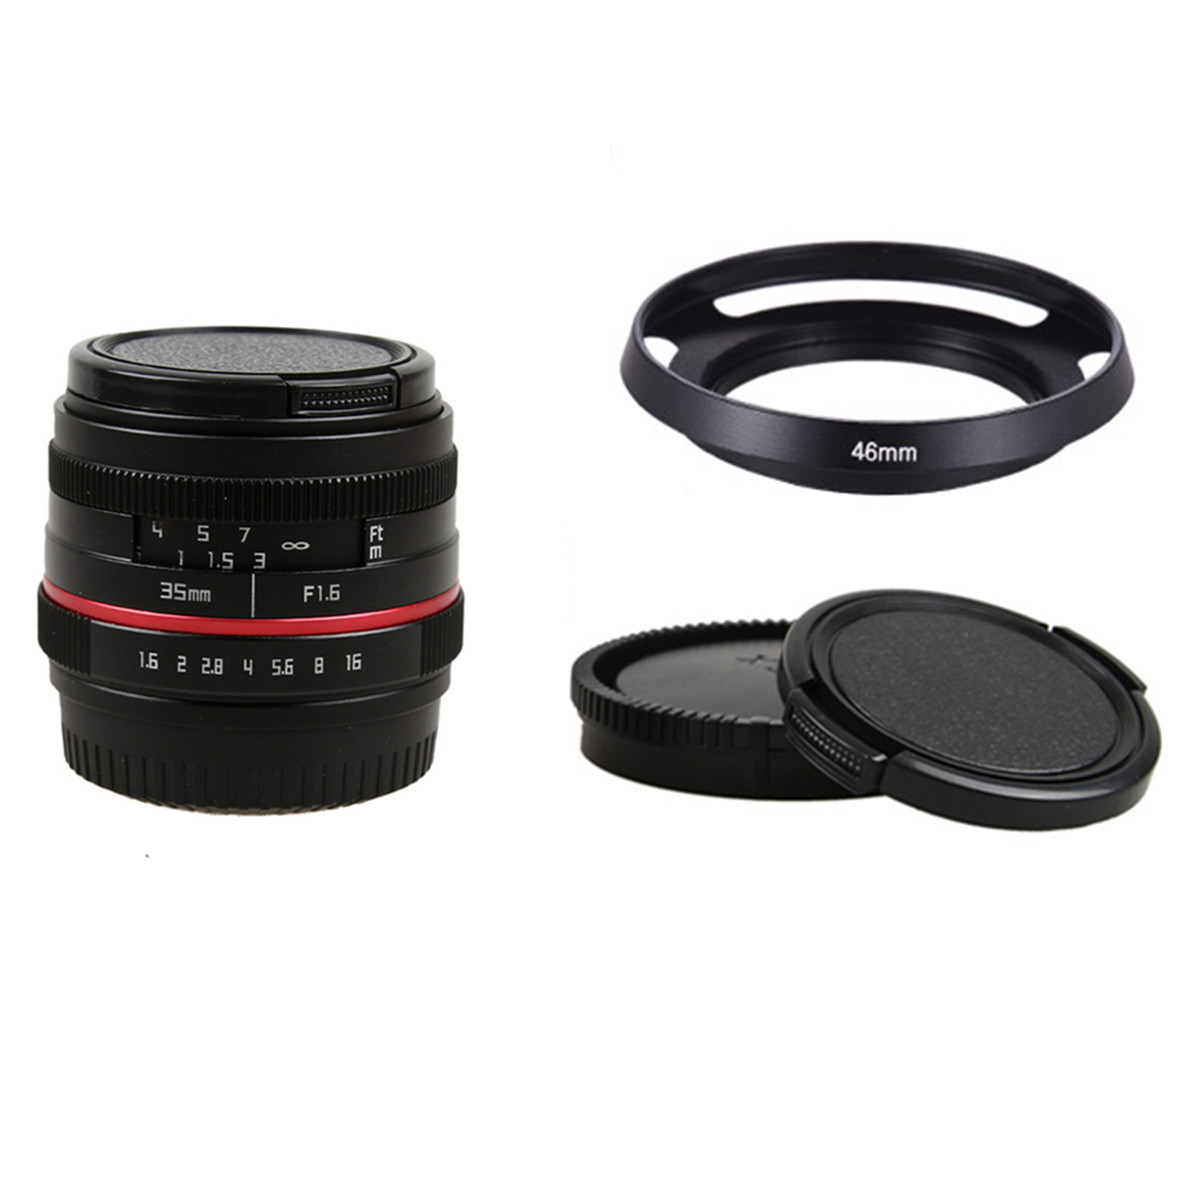 50mm f/1.8 APS-C camera Lens for Fujifilm X-T10 X-T2 X-T1 X-A3 X-A2 X-A1 X-PRO2 X-PRO1 X-E2/S X-E3 X-E1 X-M1 X-A5 X30 vocabulario elemental a1 a2 2cd